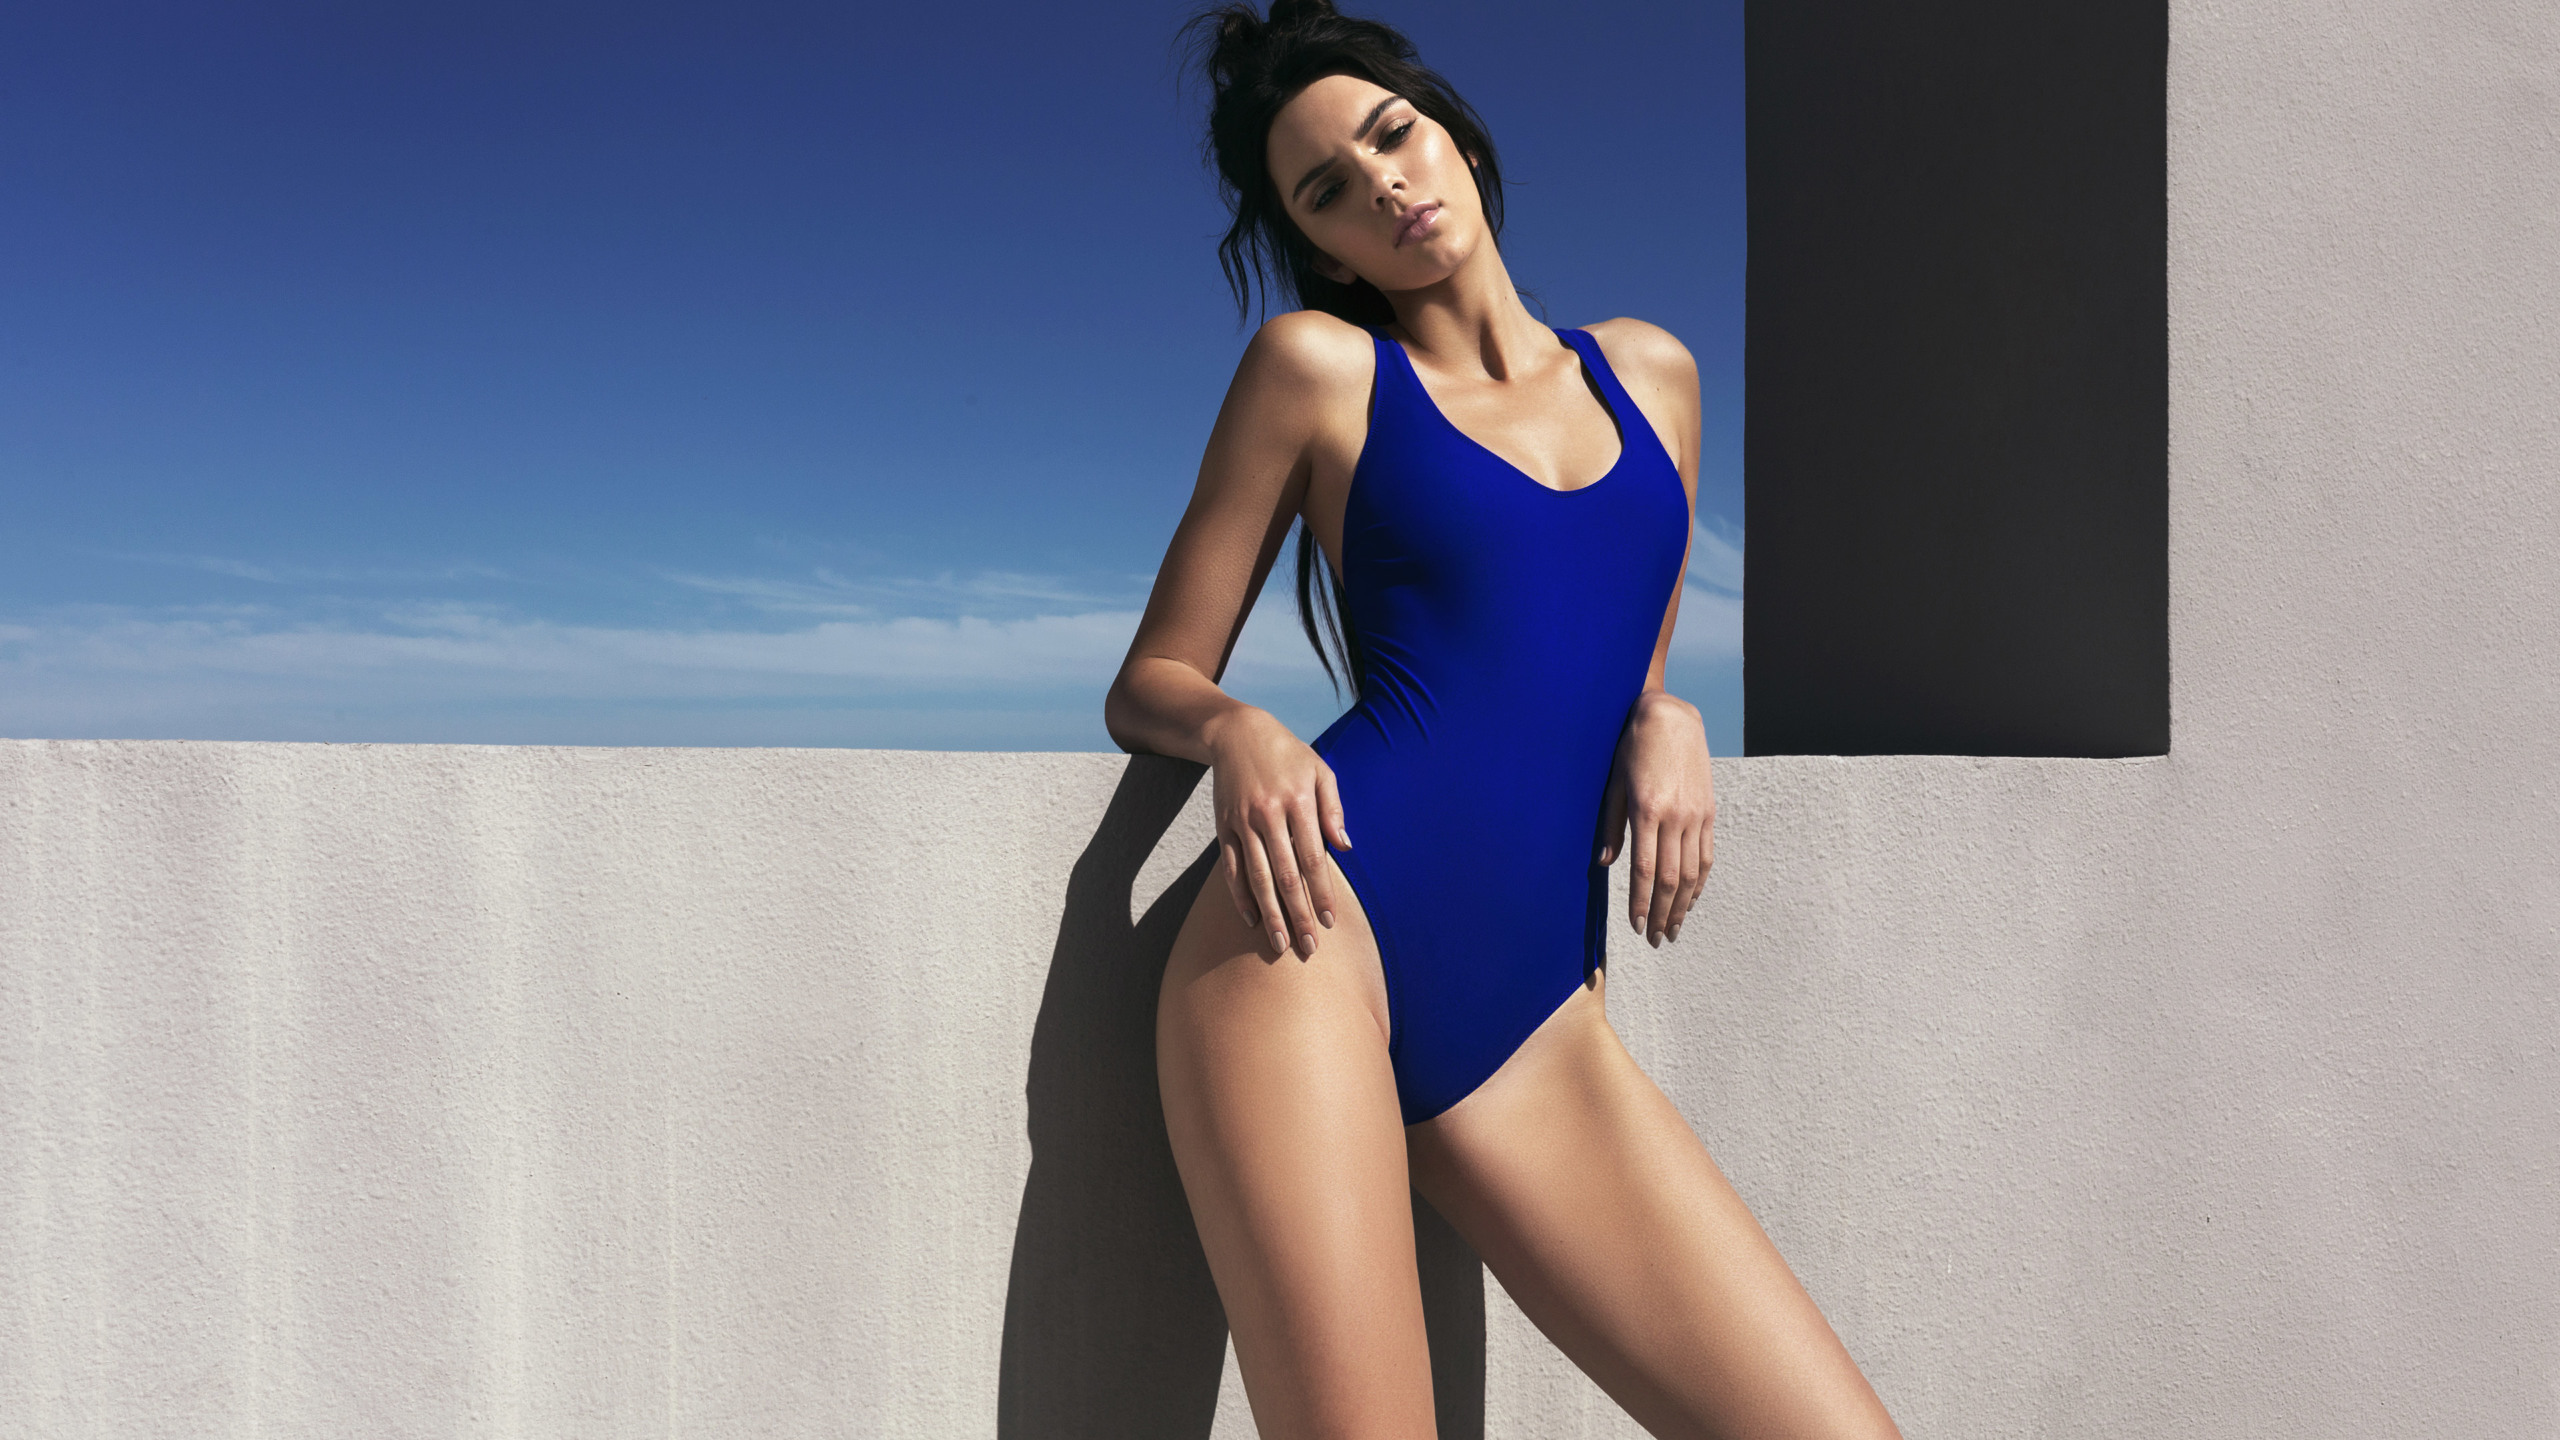 2560x1440 Kendall Jenner SwimSuit 1440P Resolution Wallpaper HD 2560x1440